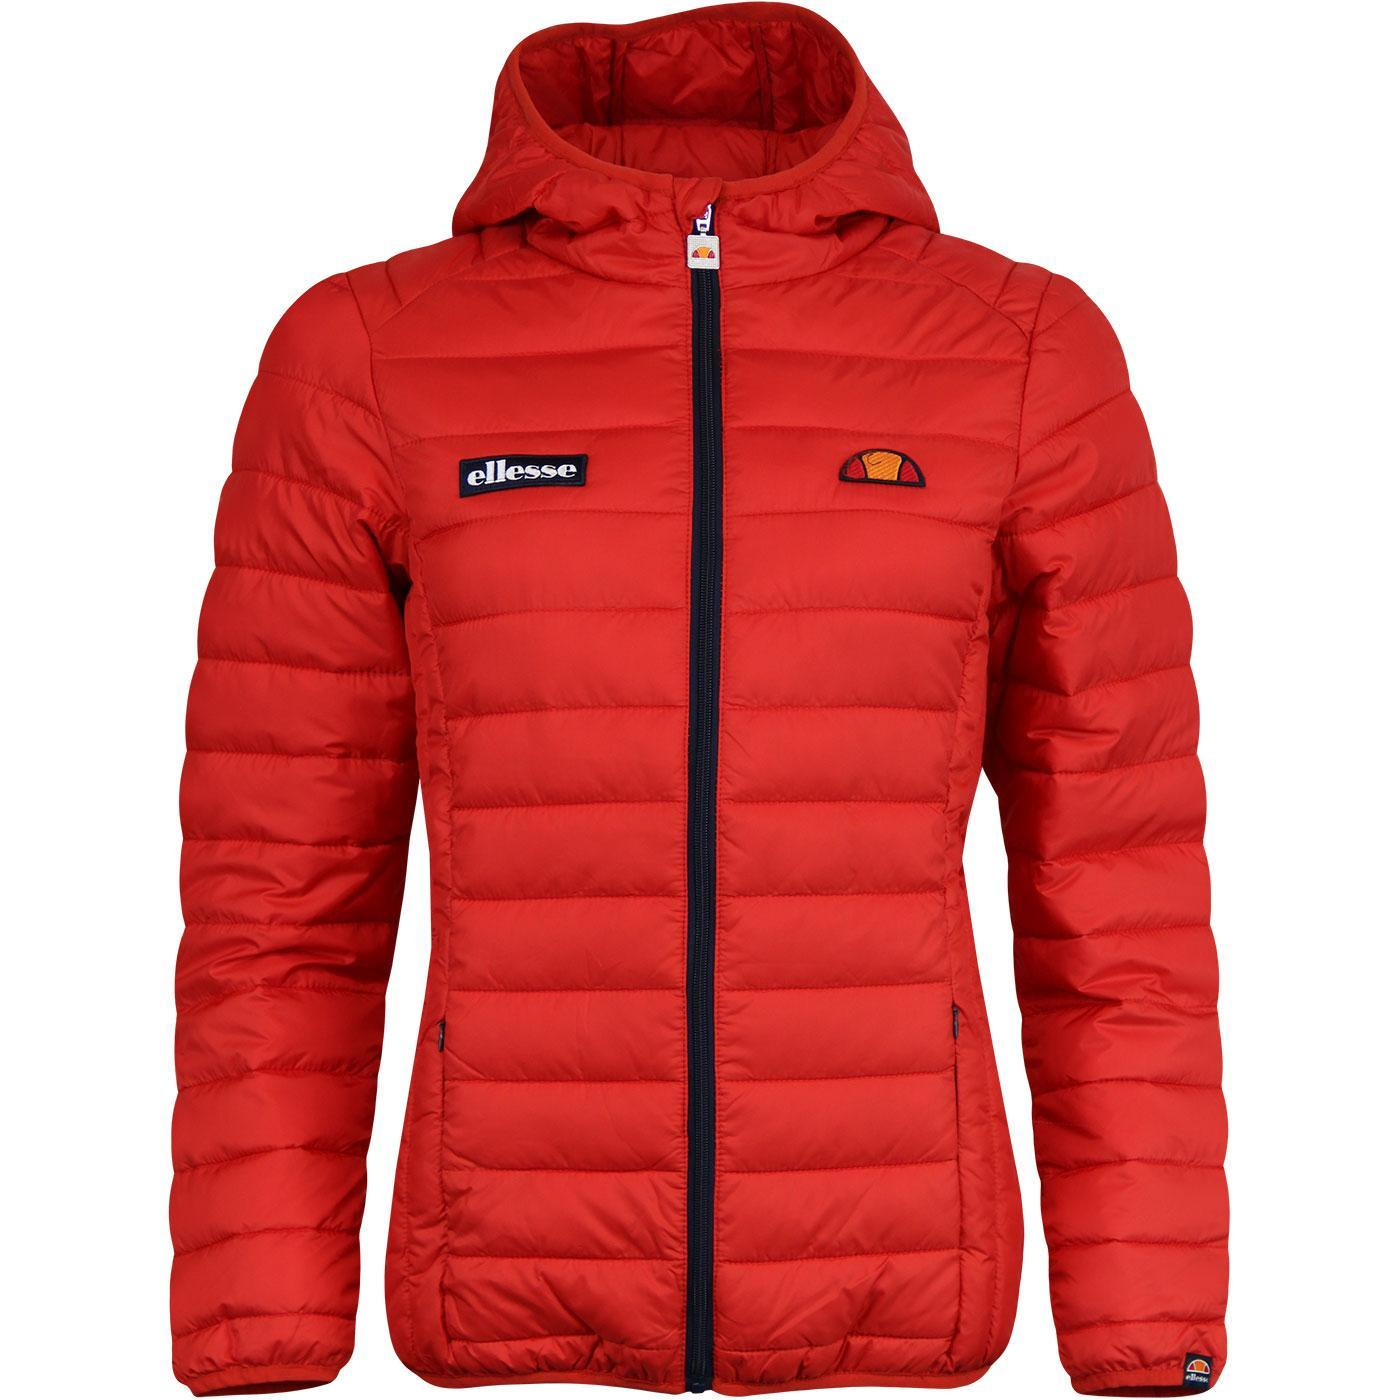 Lompard ELLESSE Retro 70s Padded Ski Jacket (Red)